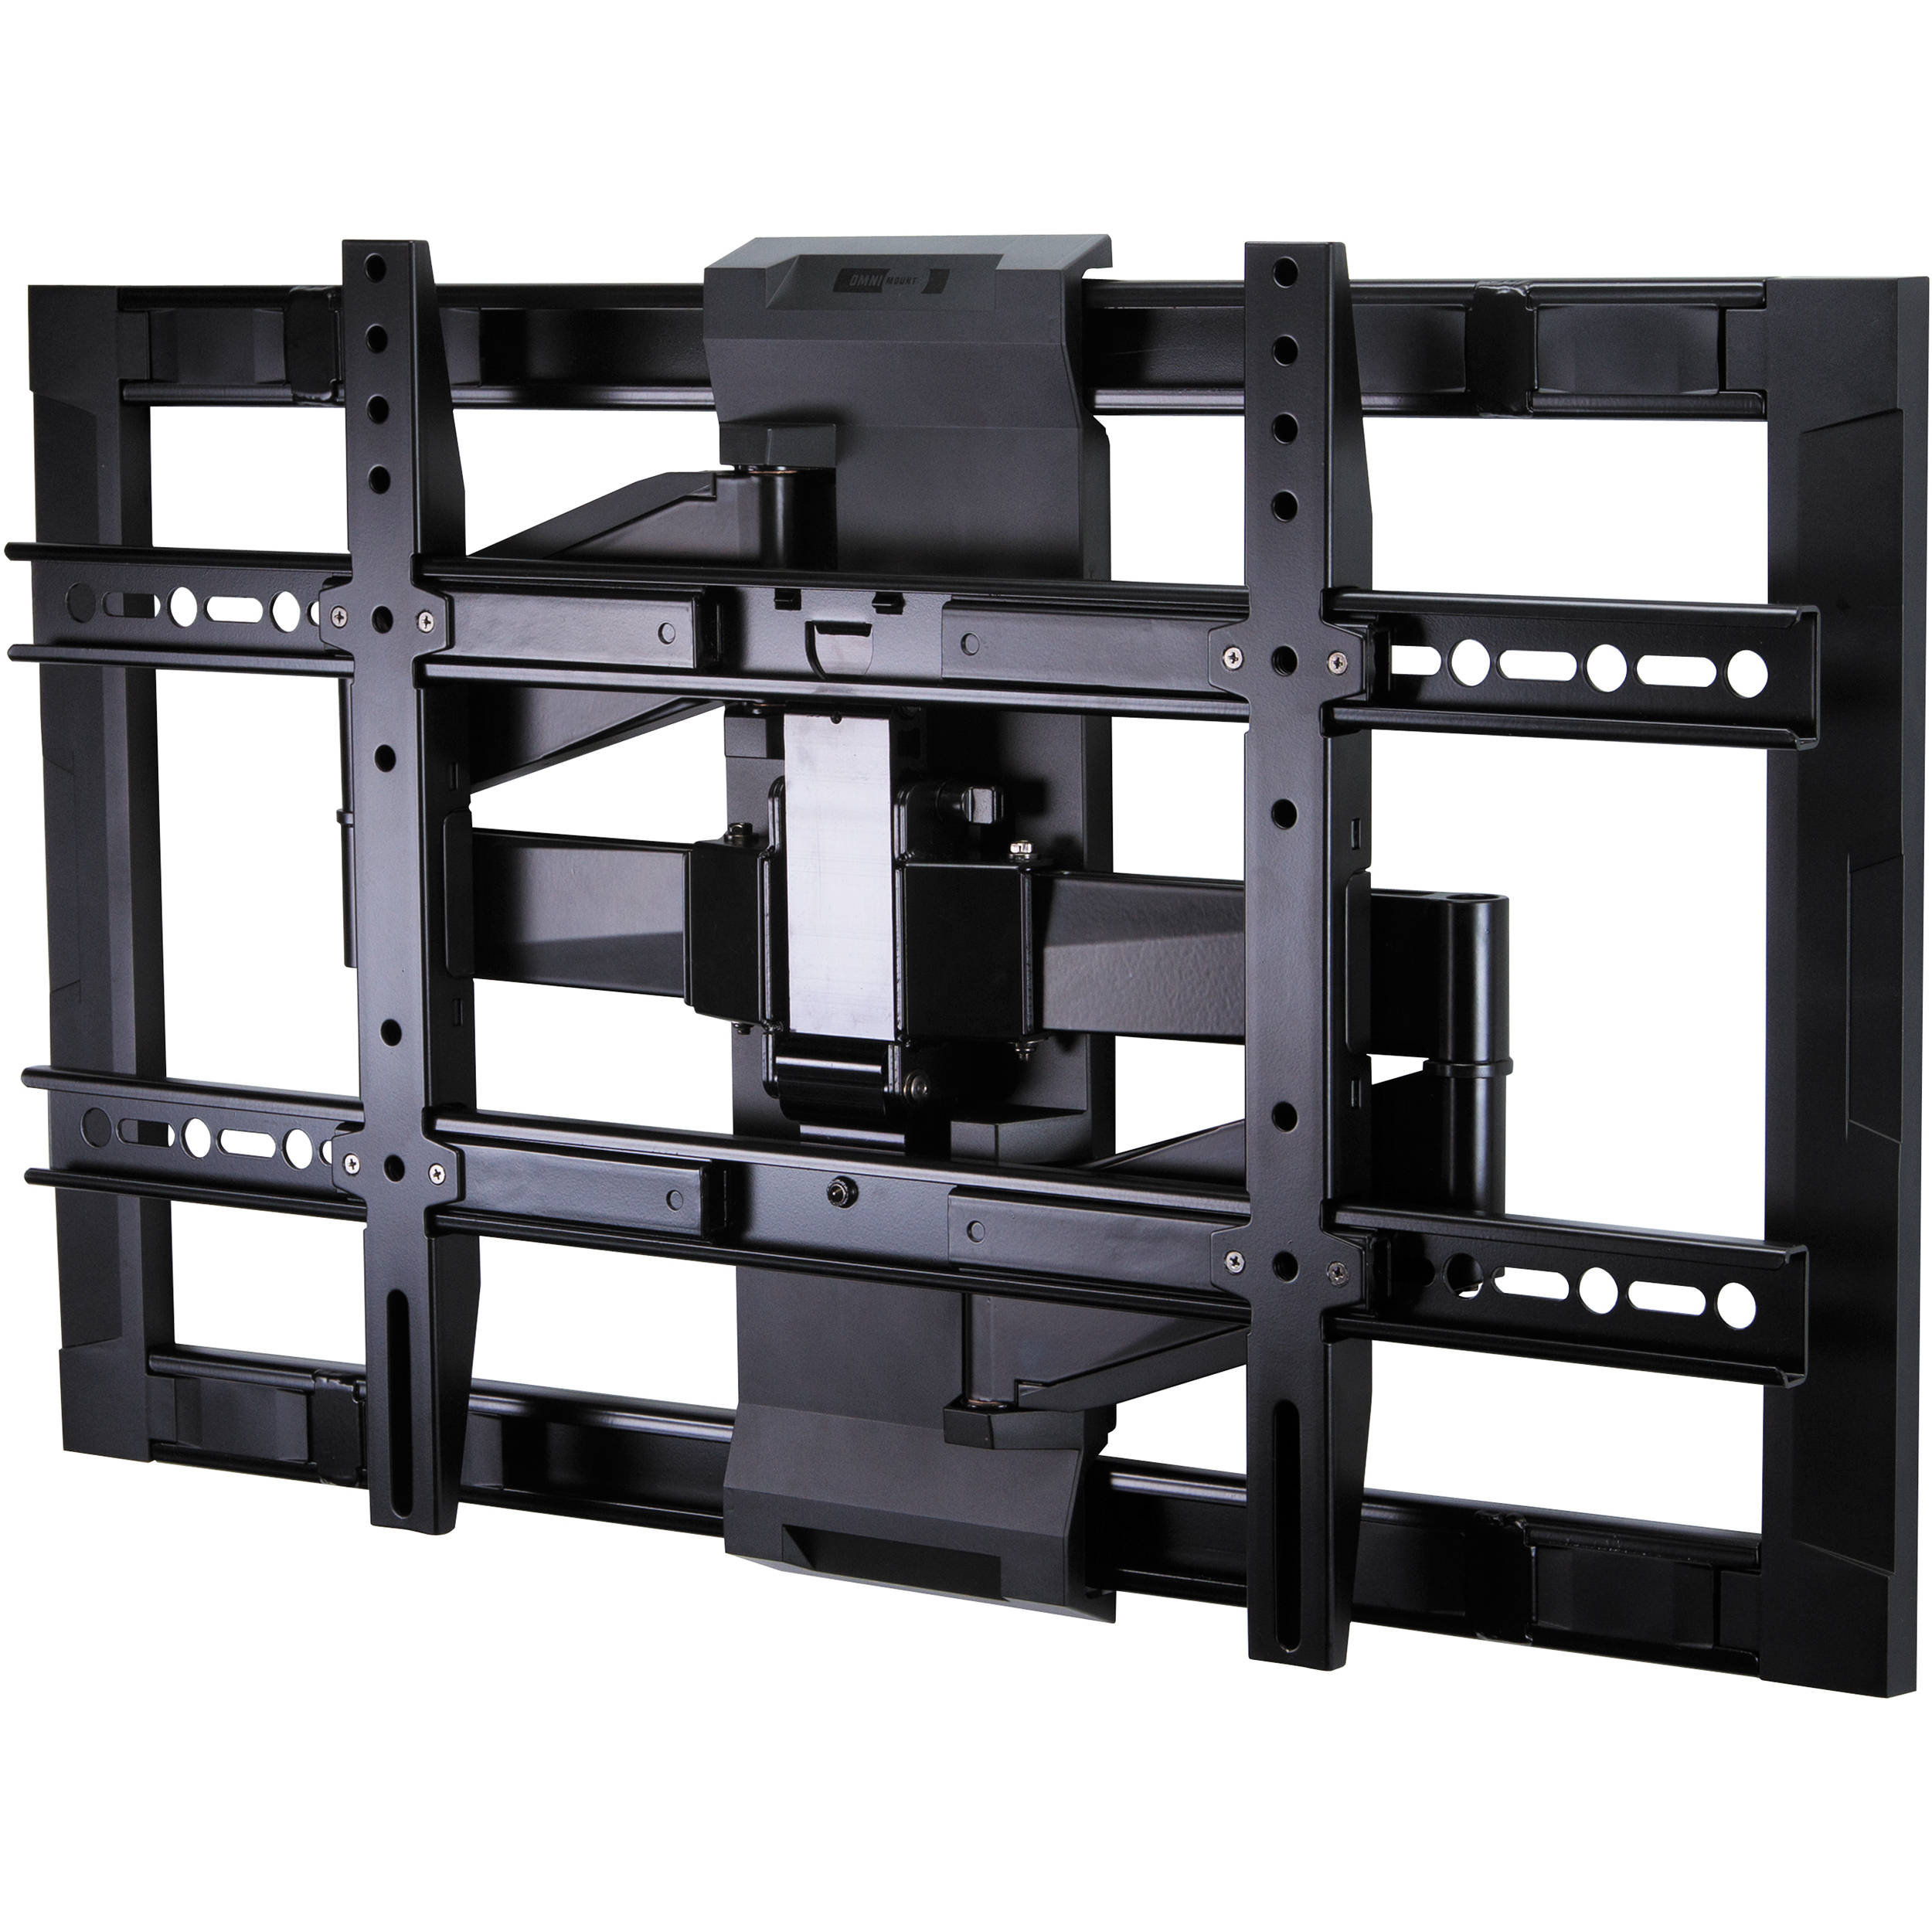 Omnimount Oe150fm Omnielite Full Motion Wall Mount For 47 To 90 Displays